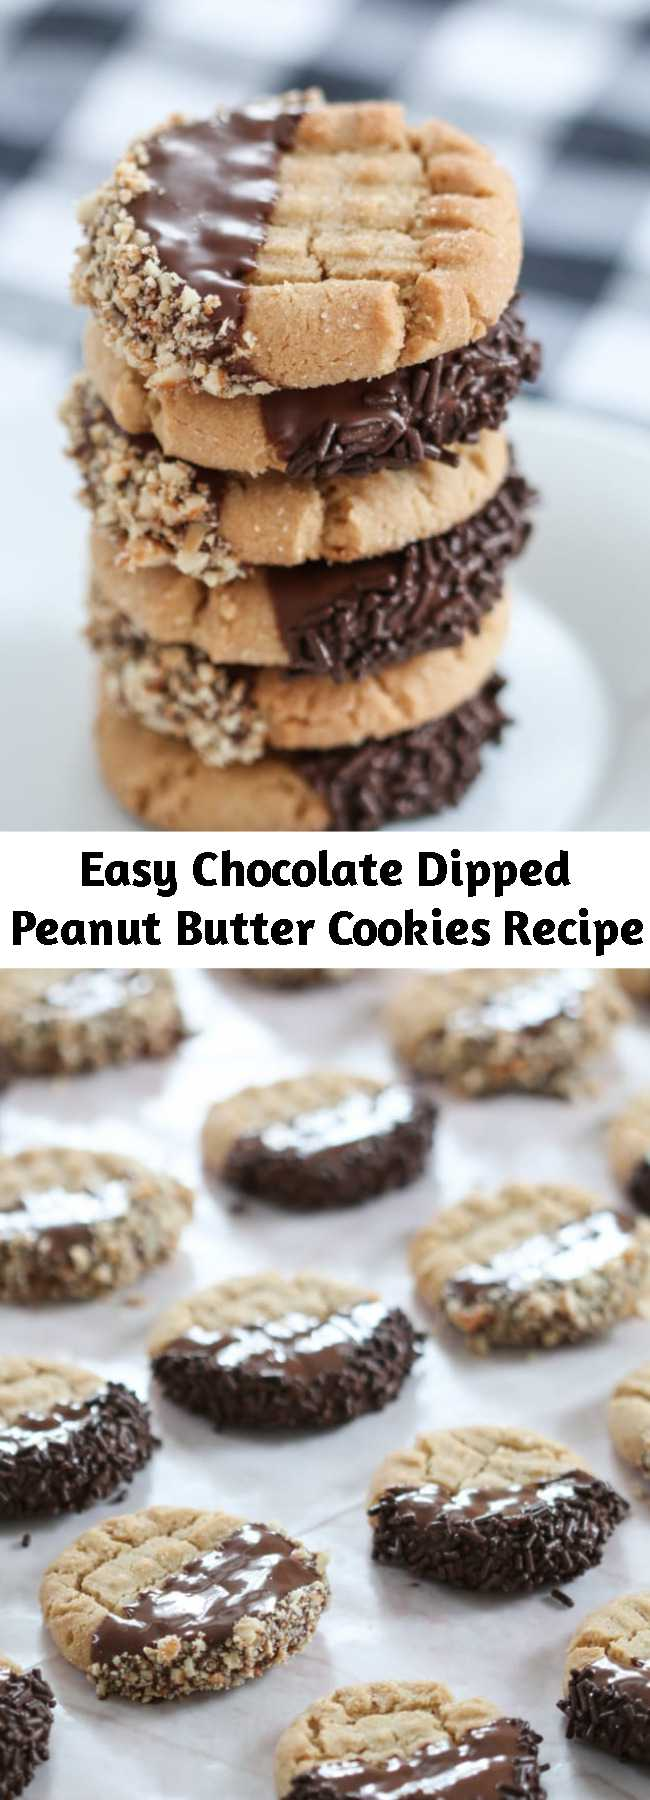 Easy Chocolate Dipped Peanut Butter Cookies Recipe - I'm convinced that you can dip anything in chocolate and instantly make it taste more delicious and look expertly styled and totally fancy. Don't believe me? Feel free to prove me wrong. And while it might take a bit more time, it's really not hard to do.